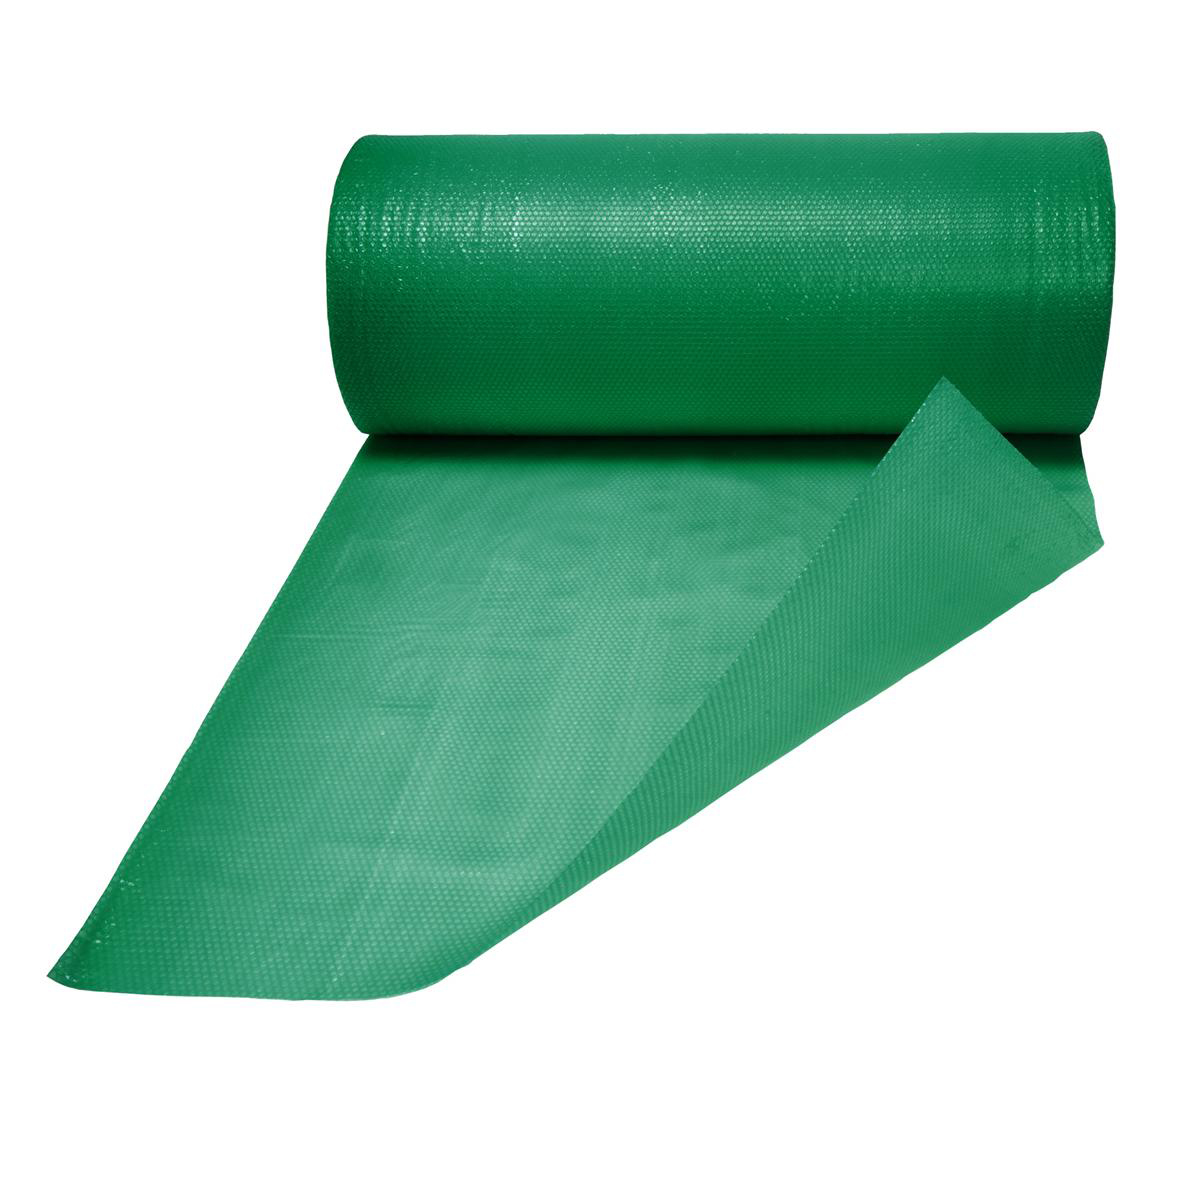 Jiffy Green Bubble Wrap Recycled Diam. 10mmxH5mm 750mmx75m Green Ref BROE54008